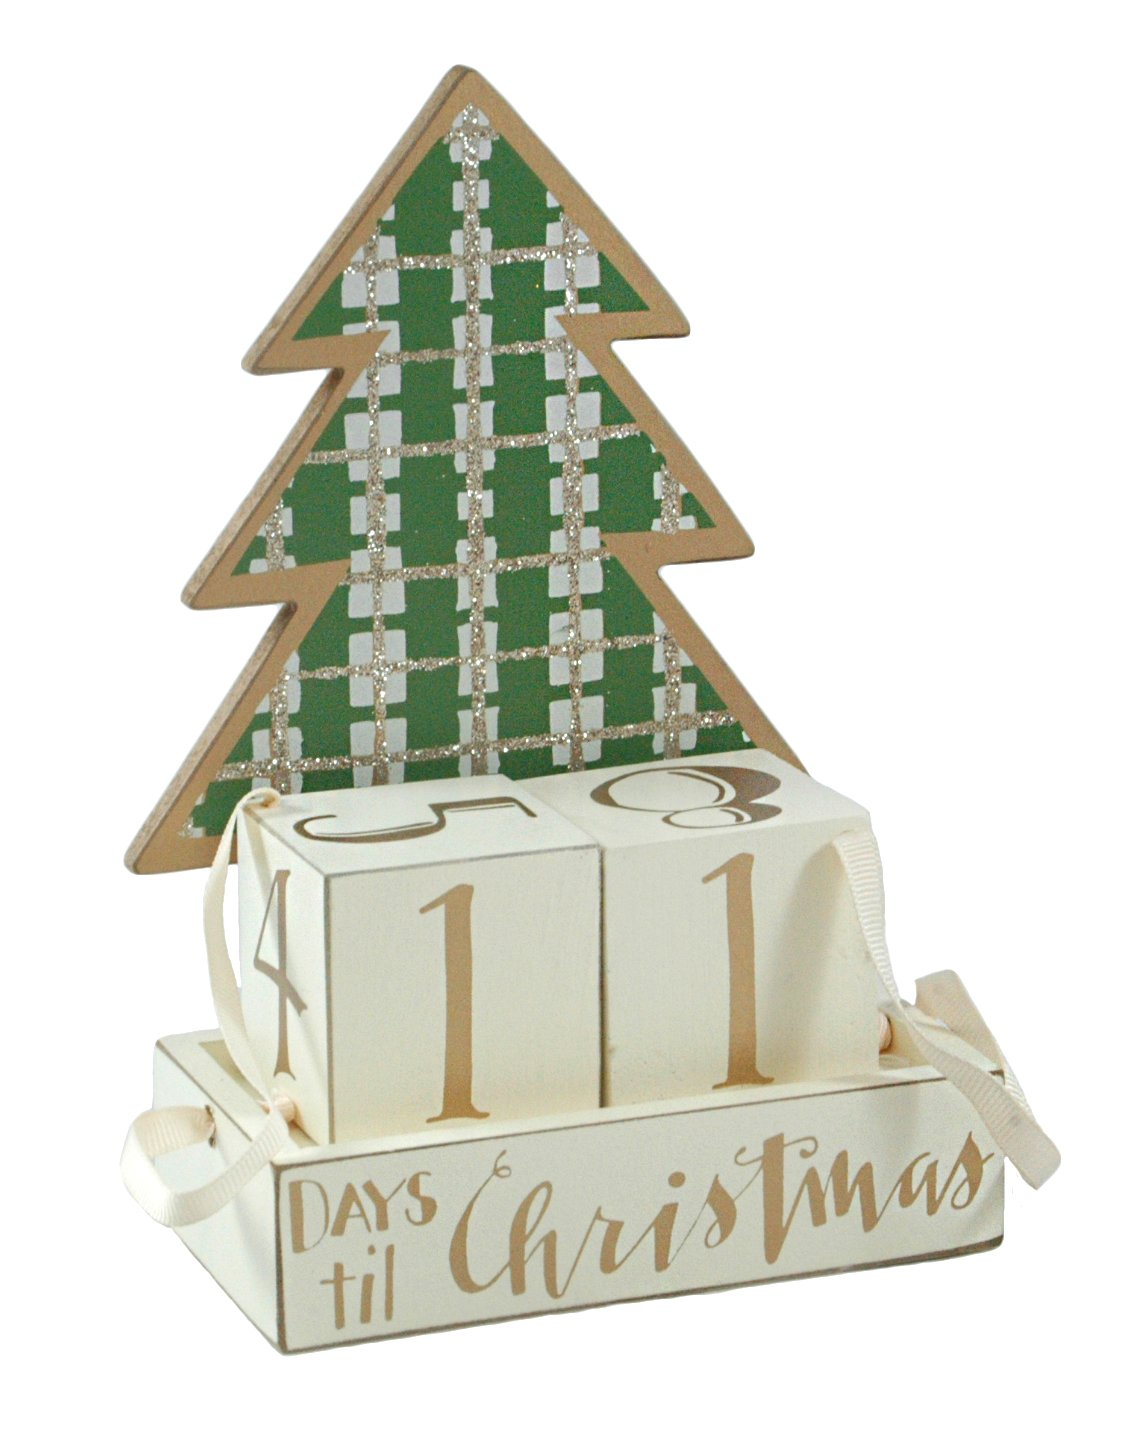 Christmas Countdown Plaid Tree Advent Calendar Wooden Block Set Primitives by Kathy